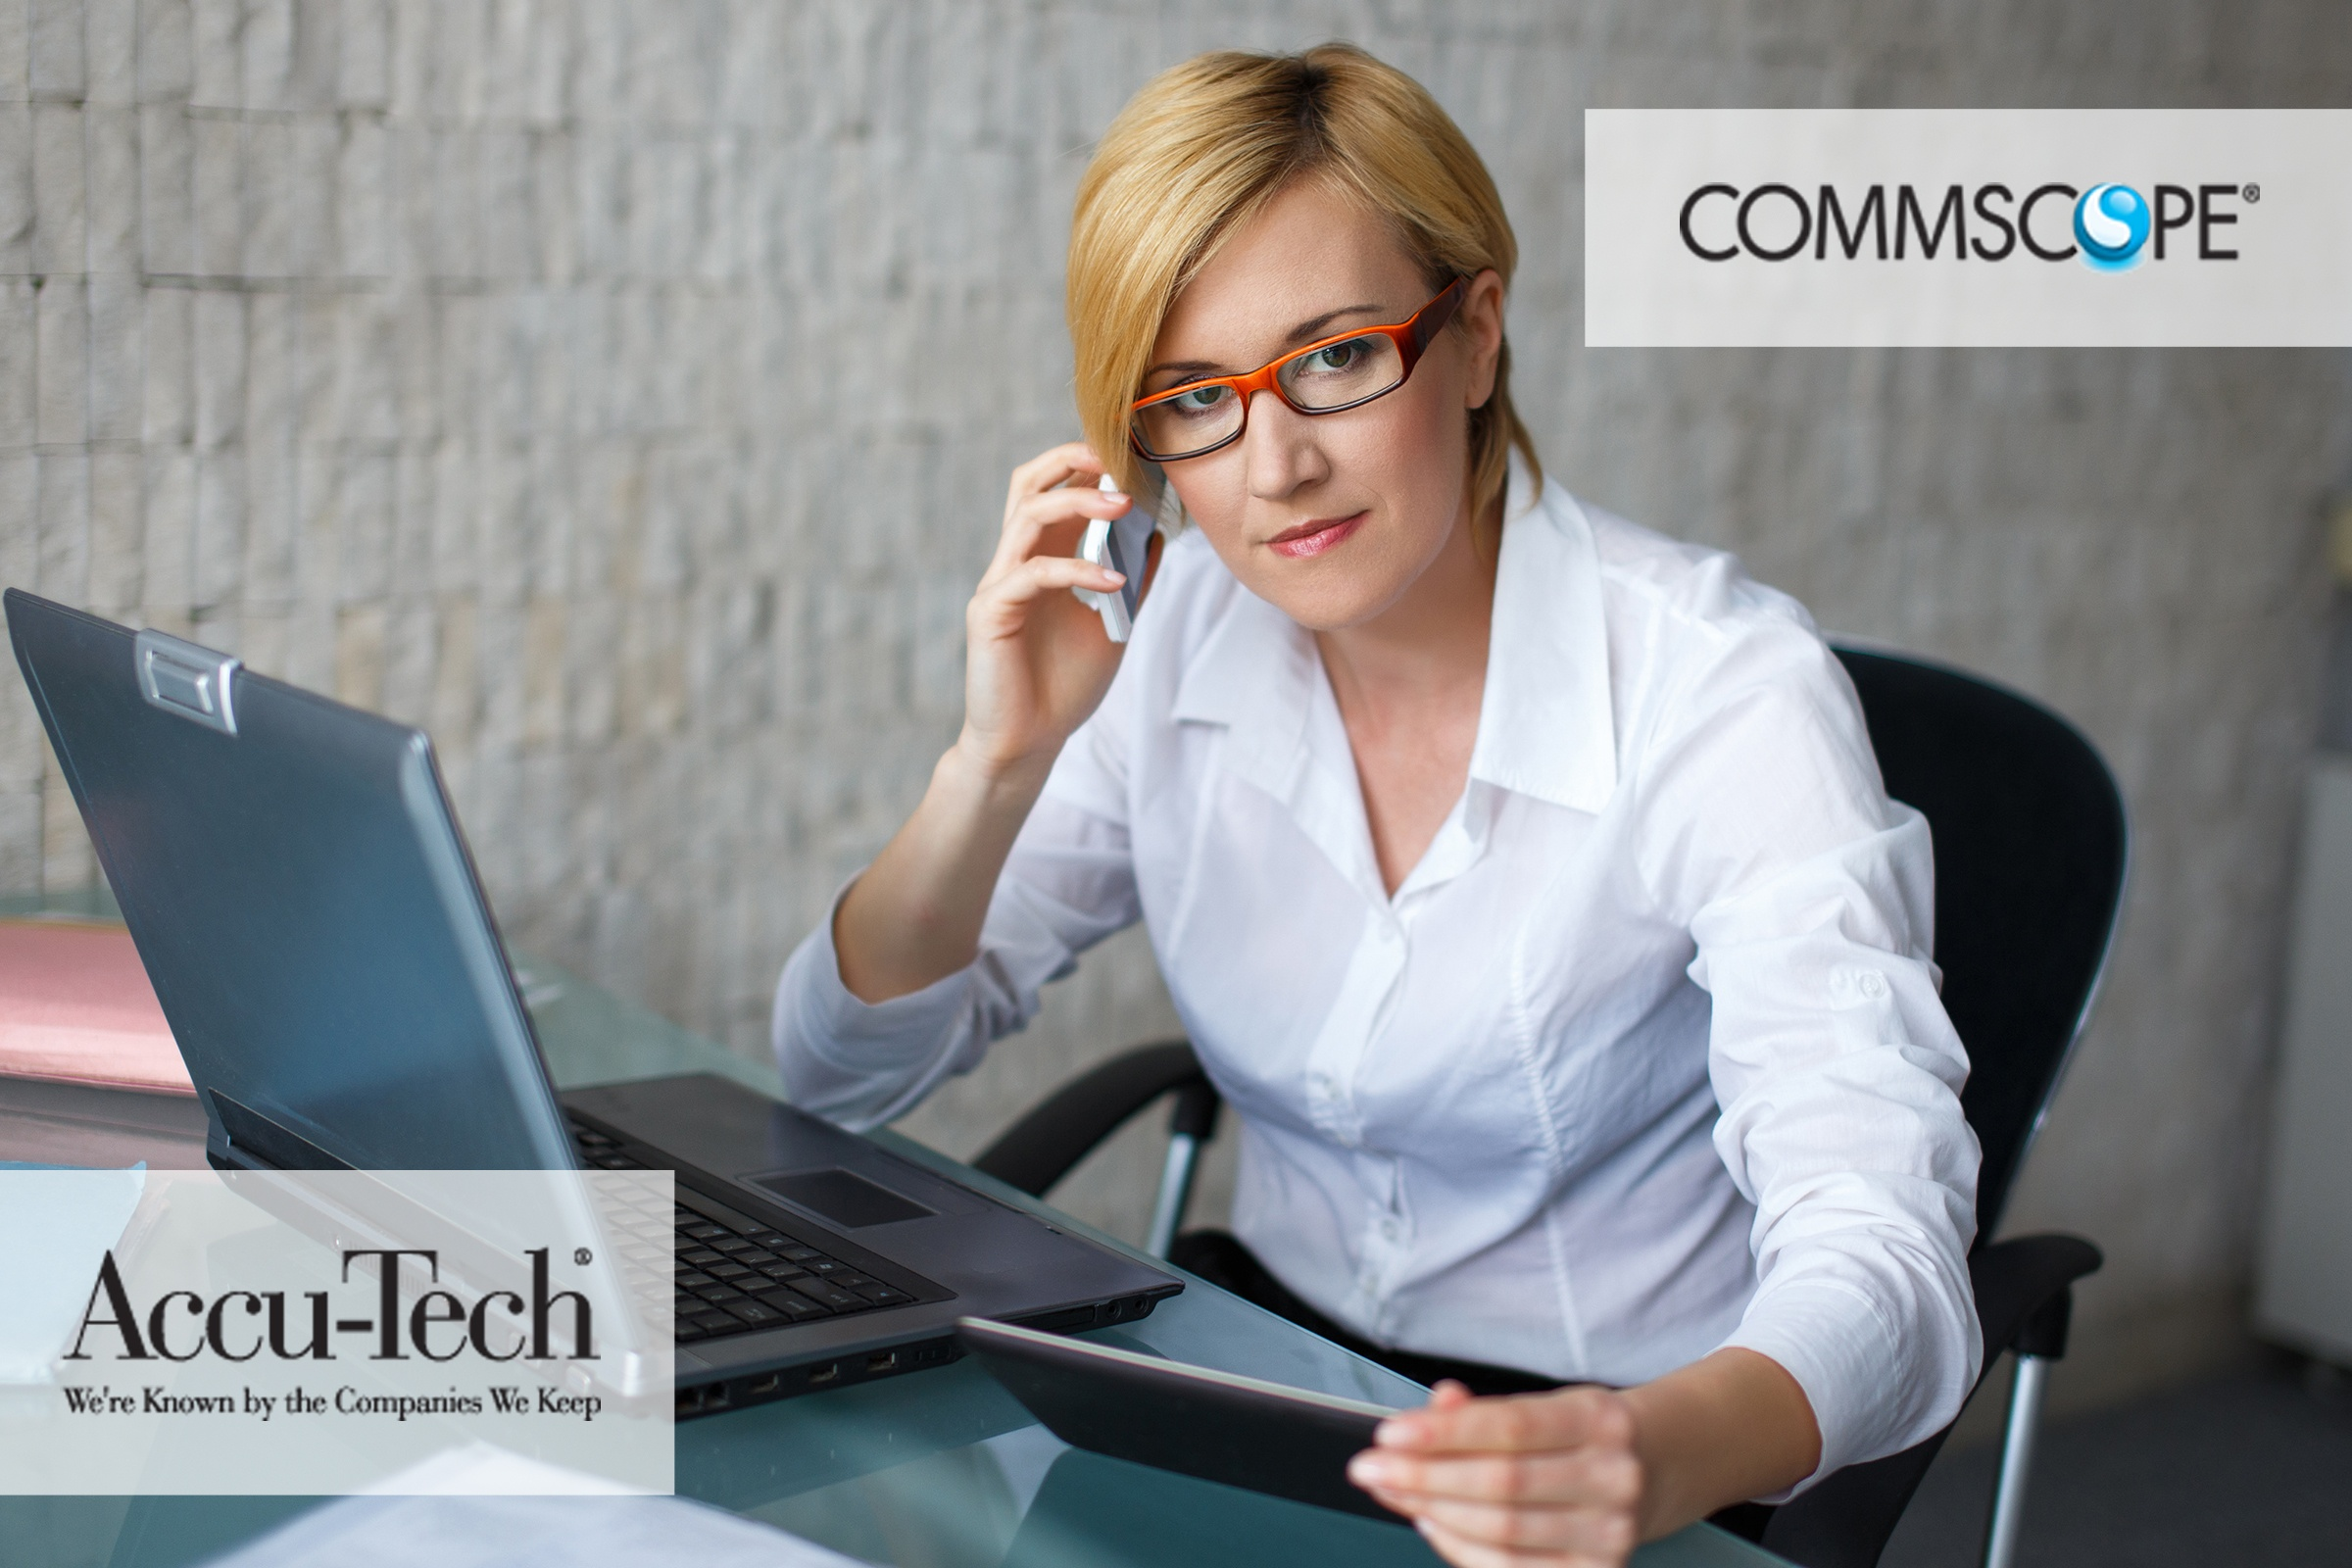 Accu-Tech_CommScope_Banner-2